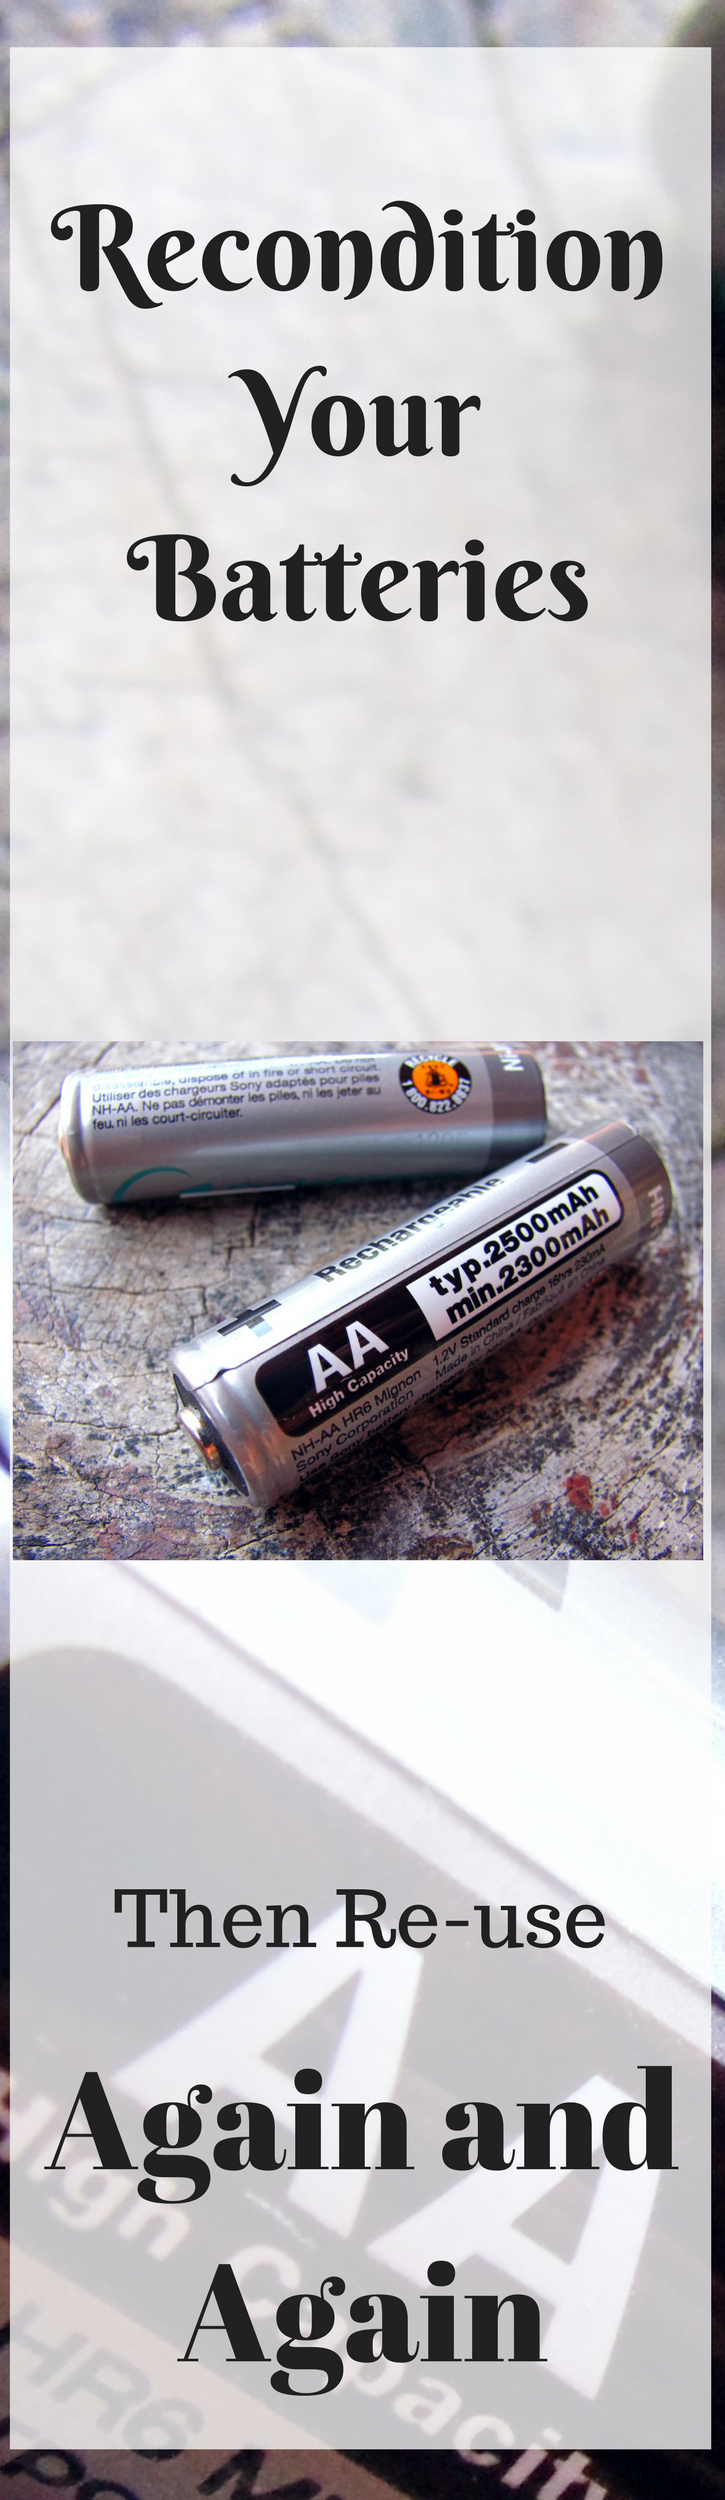 You Don T Have To Buy New Batteries Recondition Your Old Ones And Use Them Again And Again Battery Repair Recondition Batteries Rechargeable Battery Charger